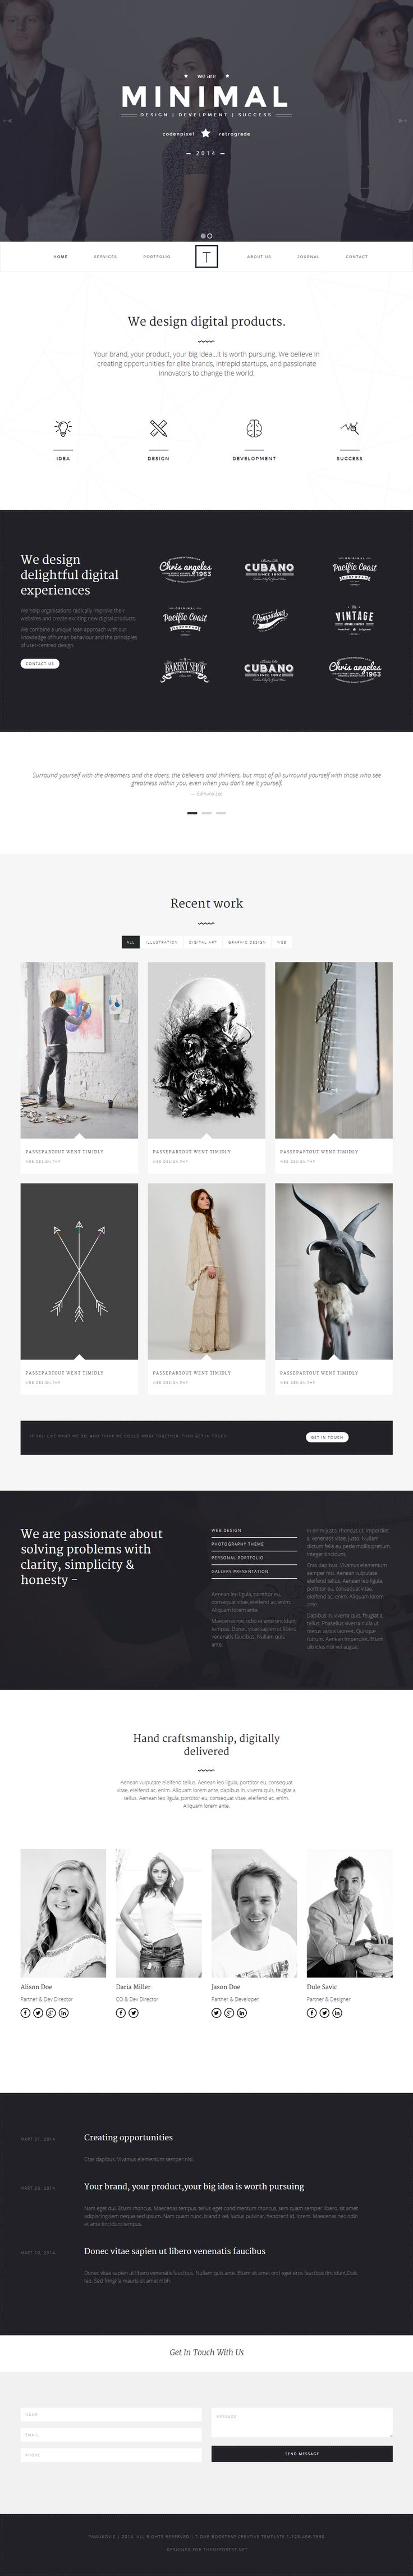 30+ Best SIMPLE WordPress Themes of 2014 #design